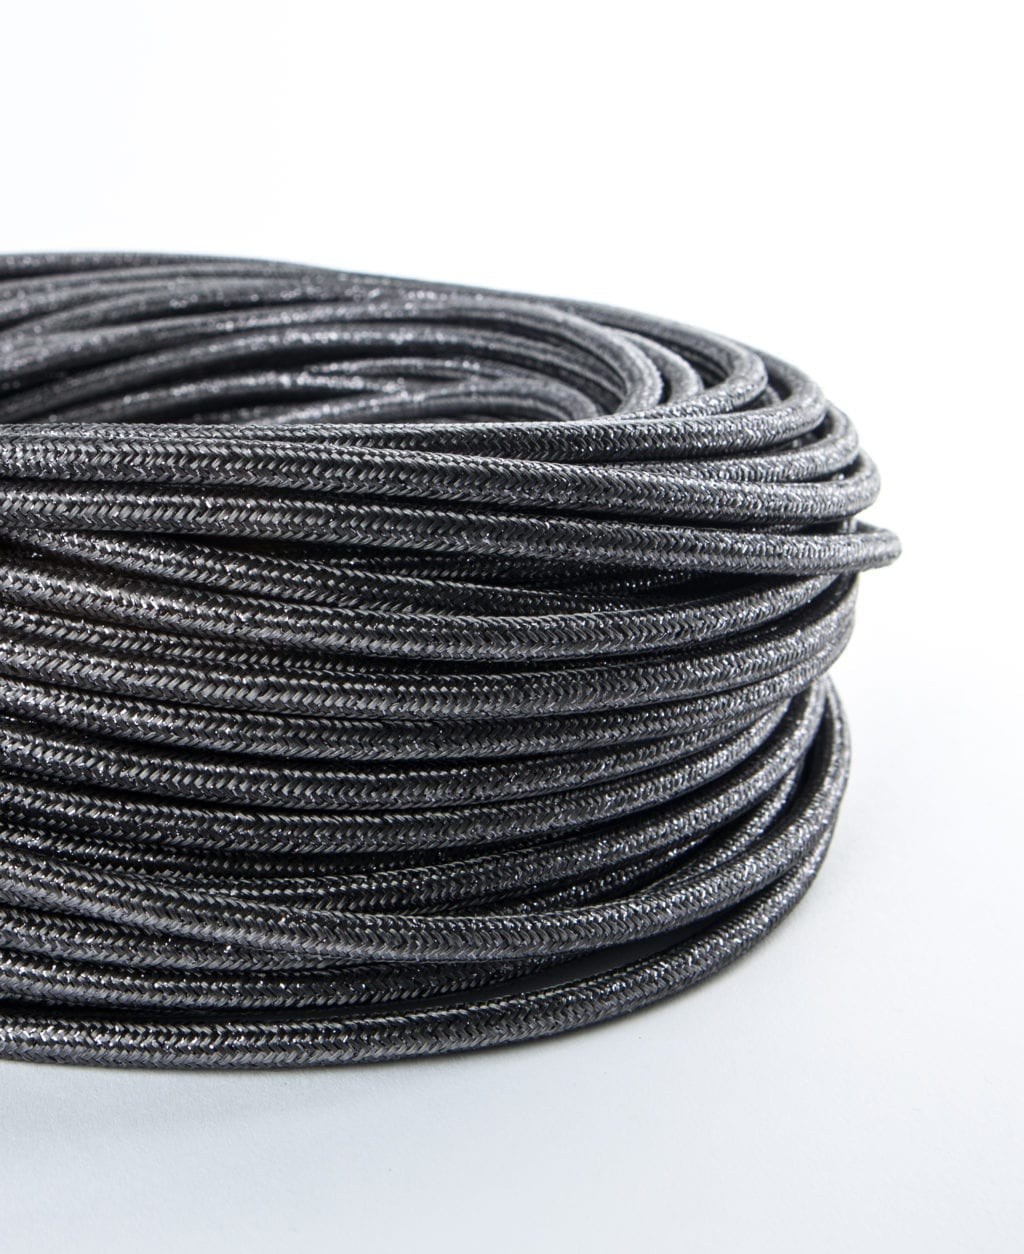 Glamour steel grey fabric cable for lighting